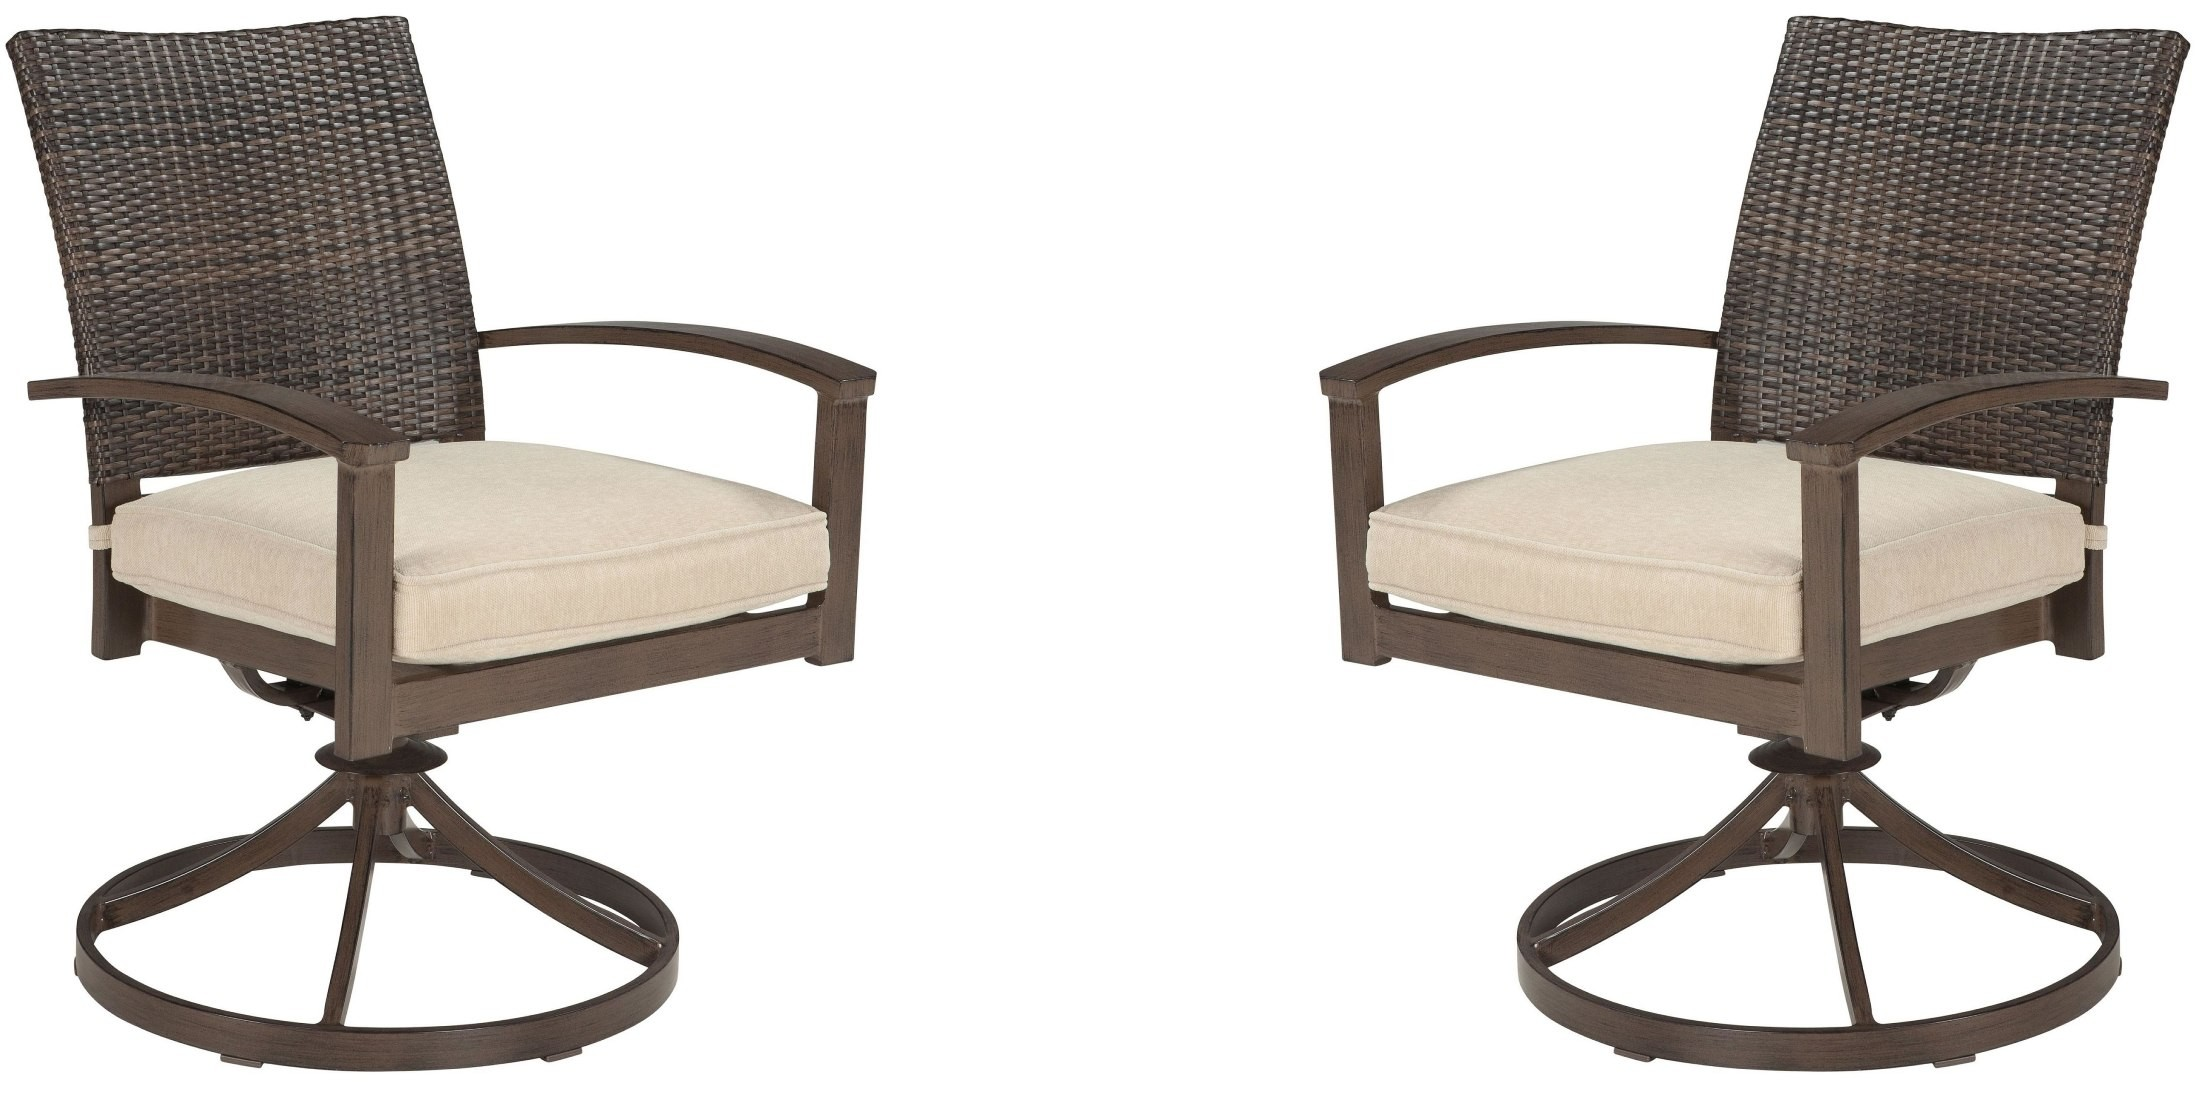 swivel chair brown kampa accessories moresdale outdoor set of 2 from ashley